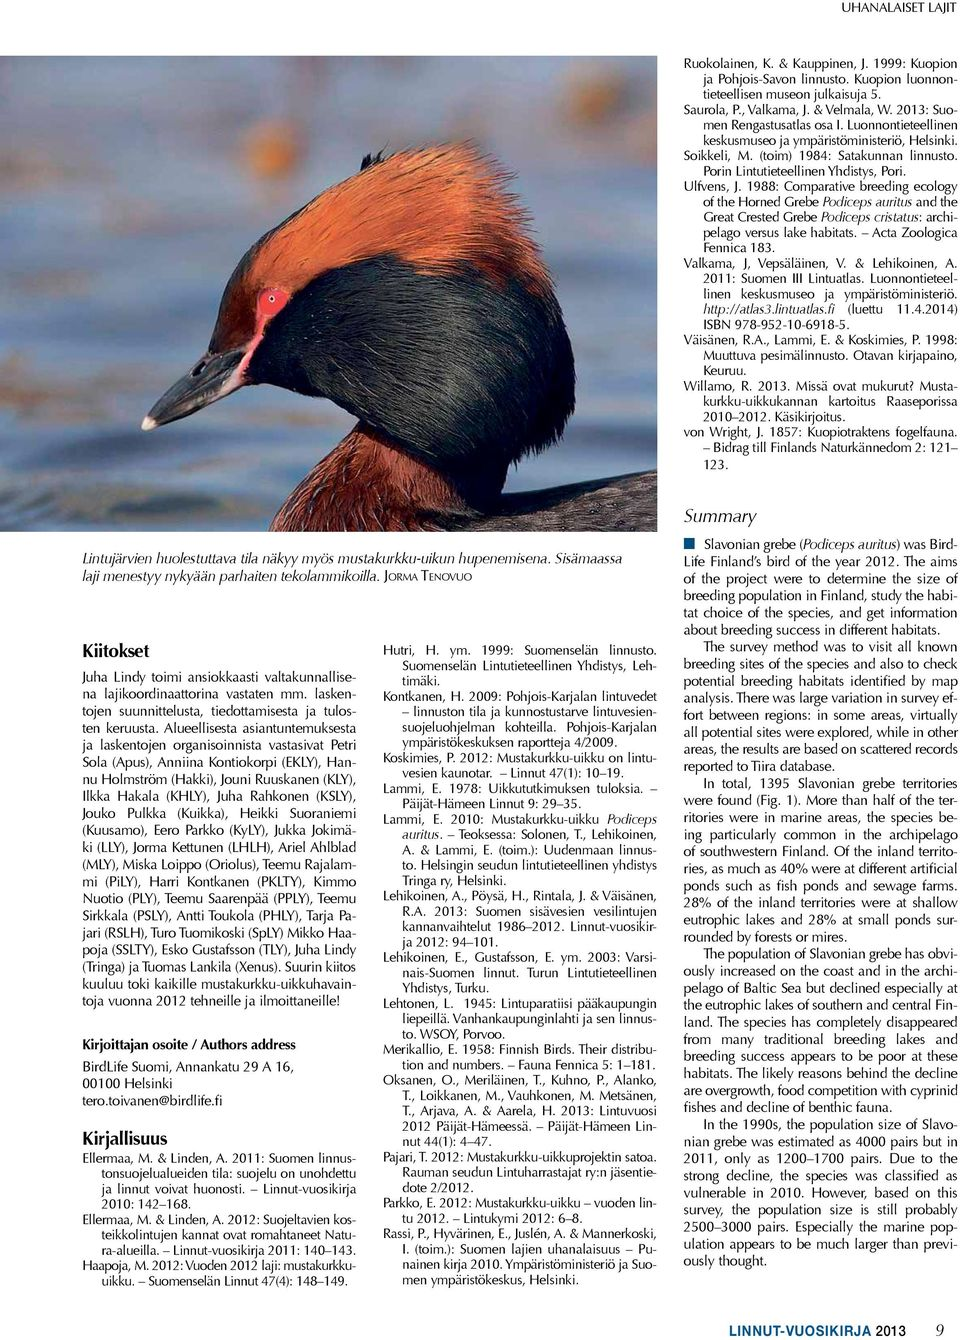 1988: Comparative breeding ecology of the Horned Grebe Podiceps auritus and the Great Crested Grebe Podiceps cristatus: archipelago versus lake habitats. Acta Zoologica Fennica 183.